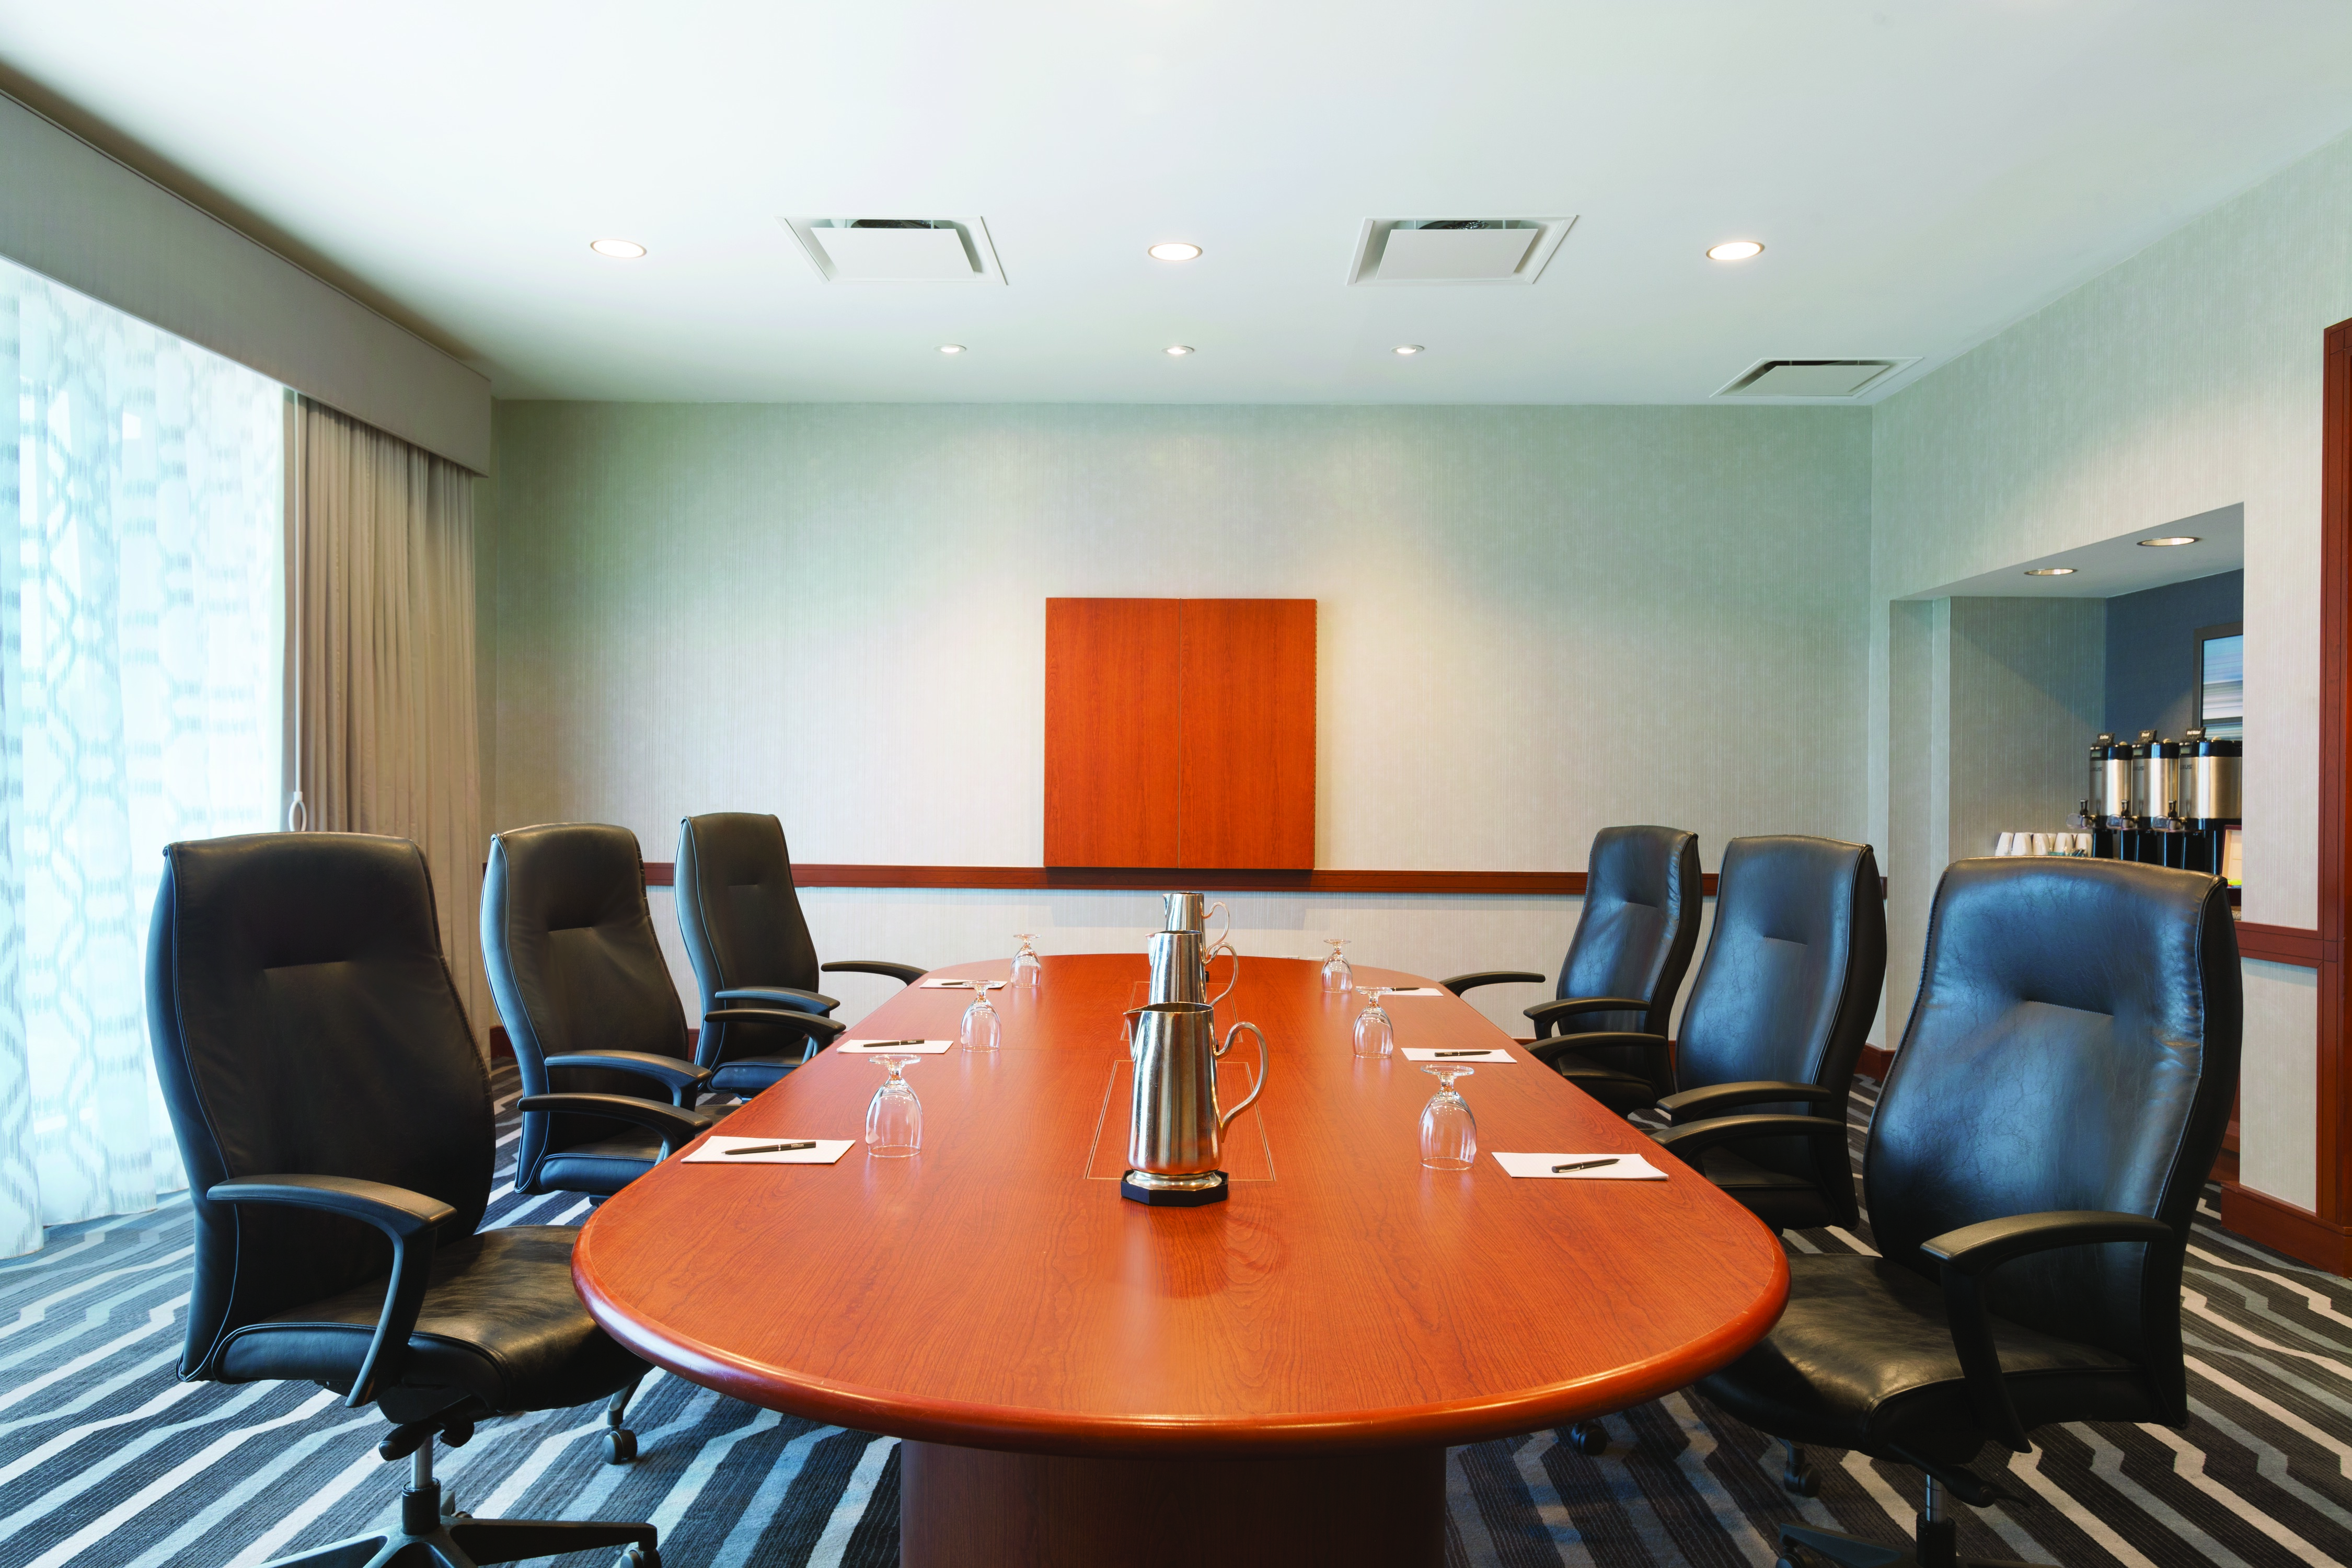 https://www.hotelsbyday.com/_data/default-hotel_image/4/21688/hilton-boston-logan-airport-conference-suite-w-table-205-1014019.jpg